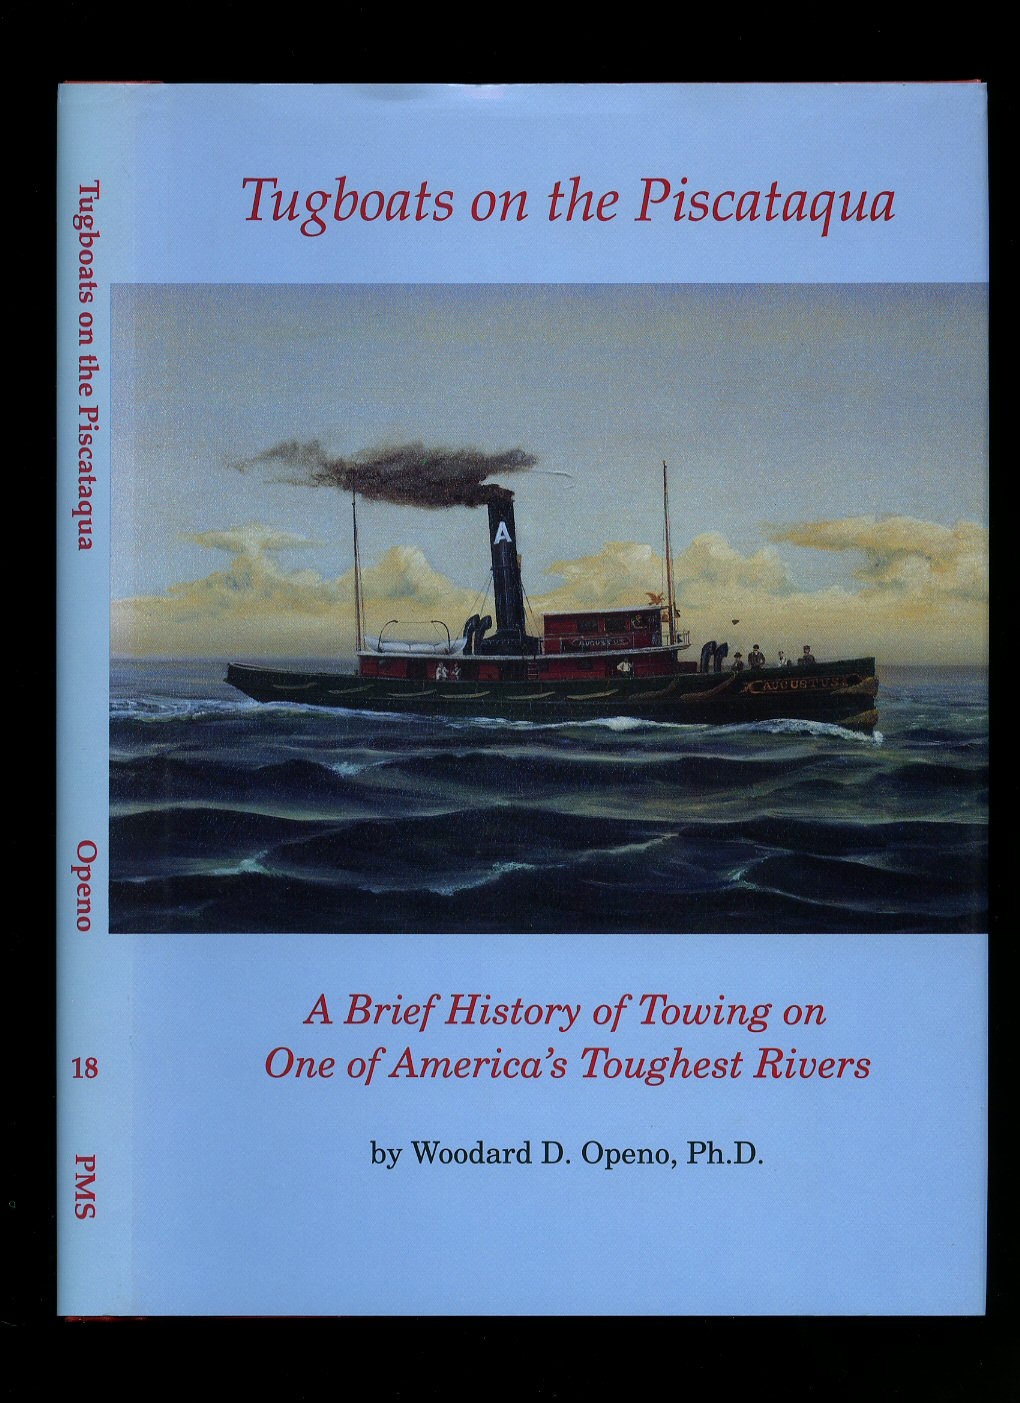 OPENO, WOODWARD D. - Tugboats on the Piscataqua; A Brief History of Towing on One of America's Toughest Rivers [Publication No. 18]